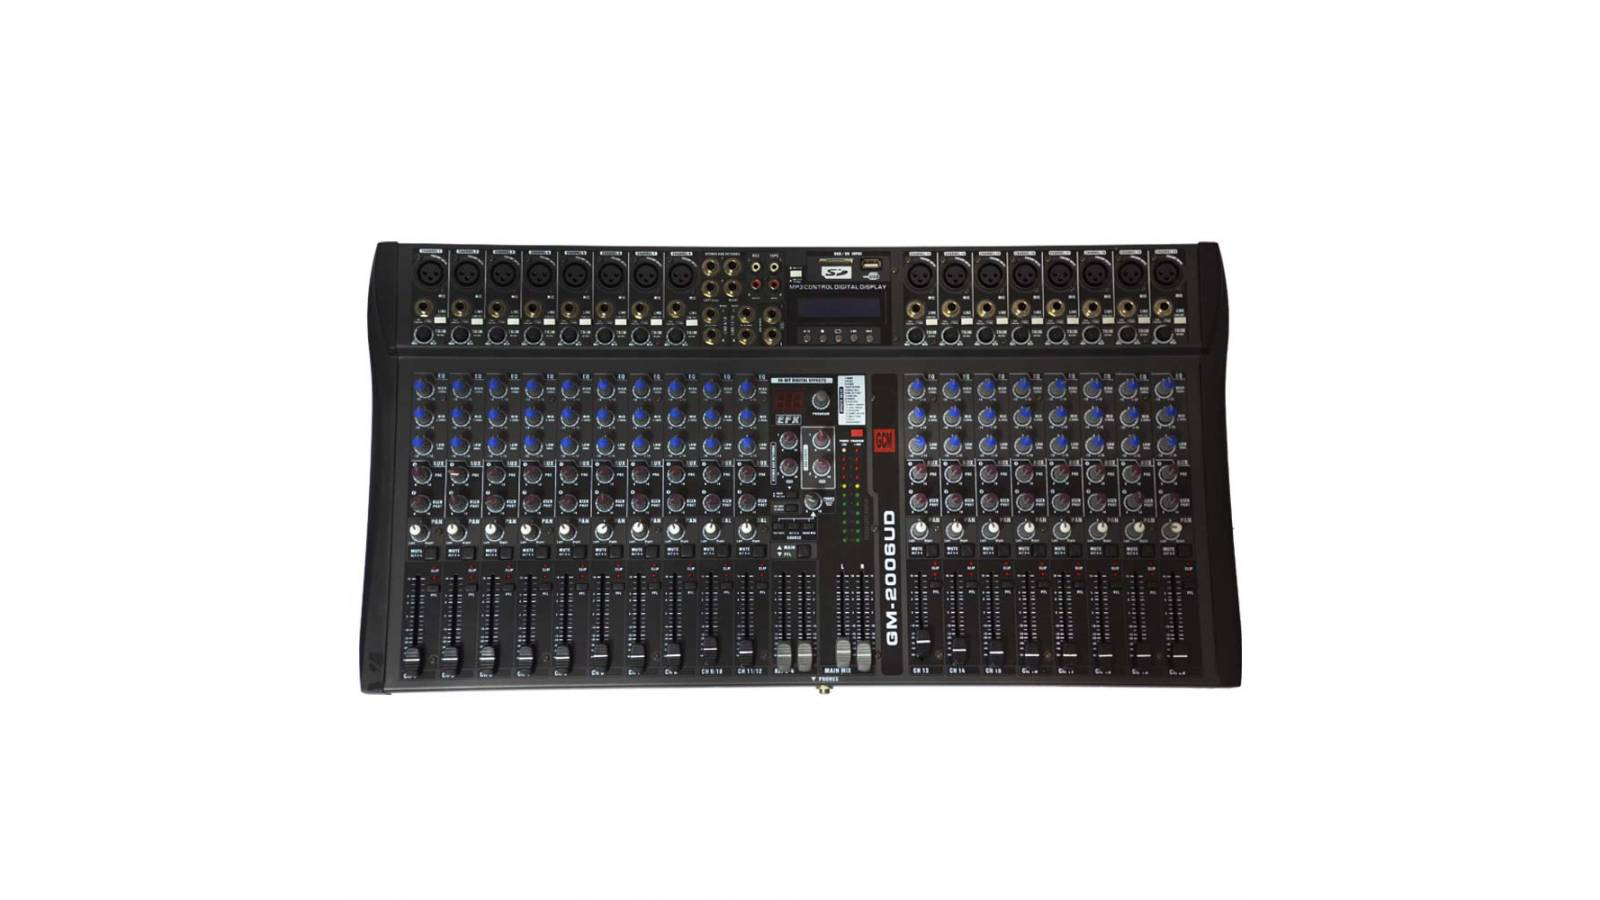 Consola Profesional 20 Canales Usb+Sd GM-2006UD 25% OFF